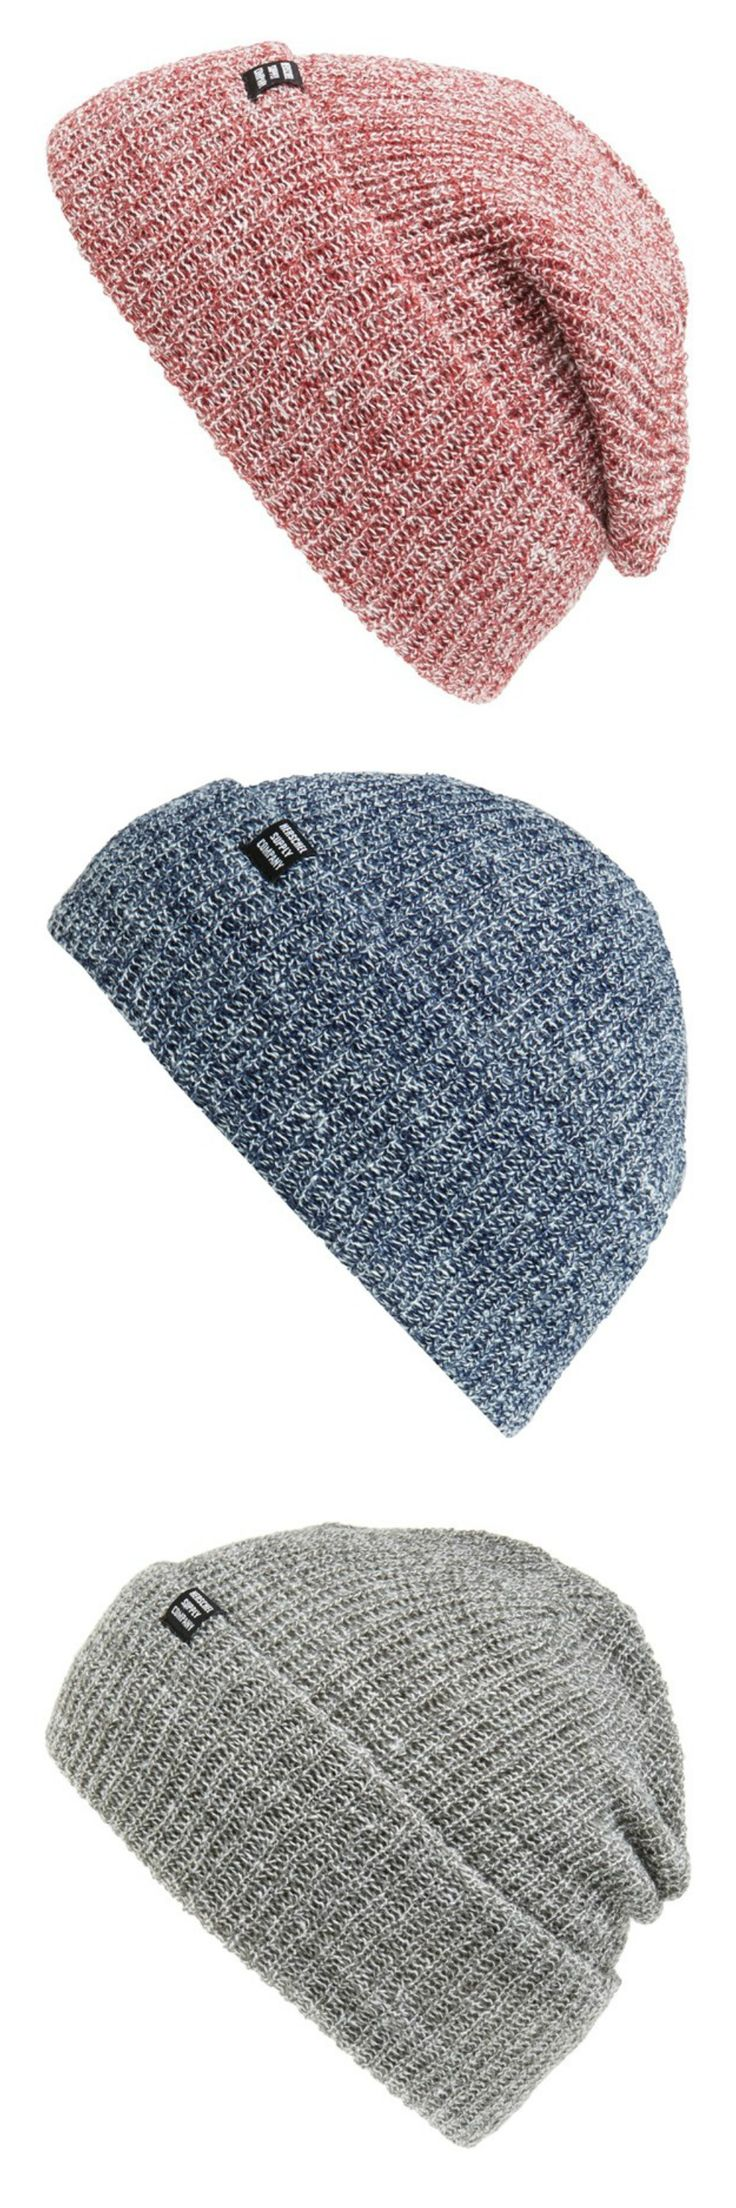 Love these chunky knit beanies!